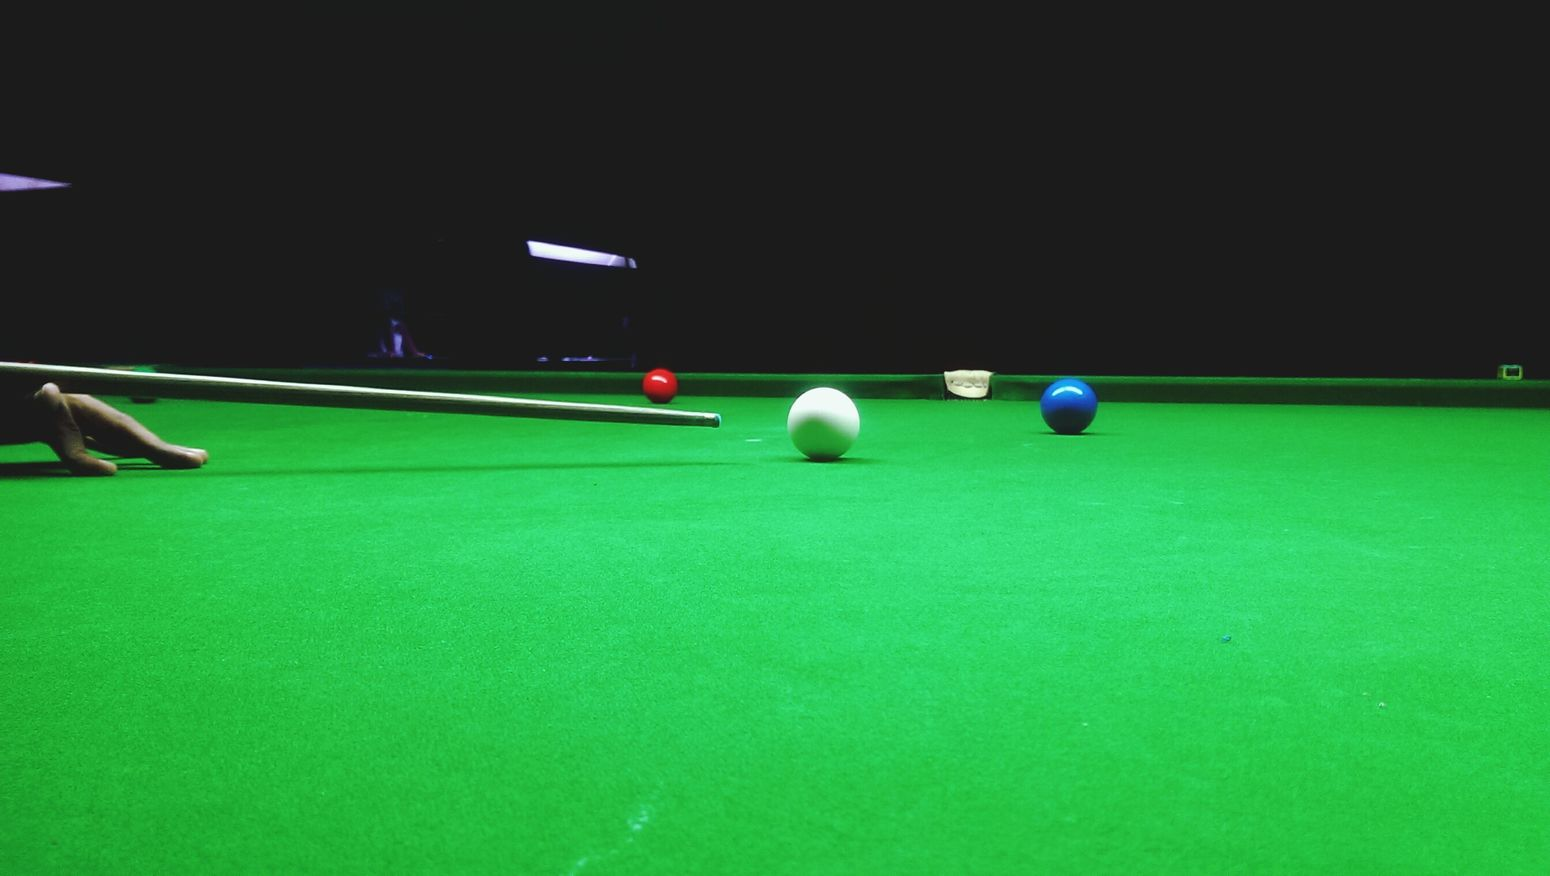 Snooker_hall Playing Snooker Hanging Out Taking Photos Light And Shadow